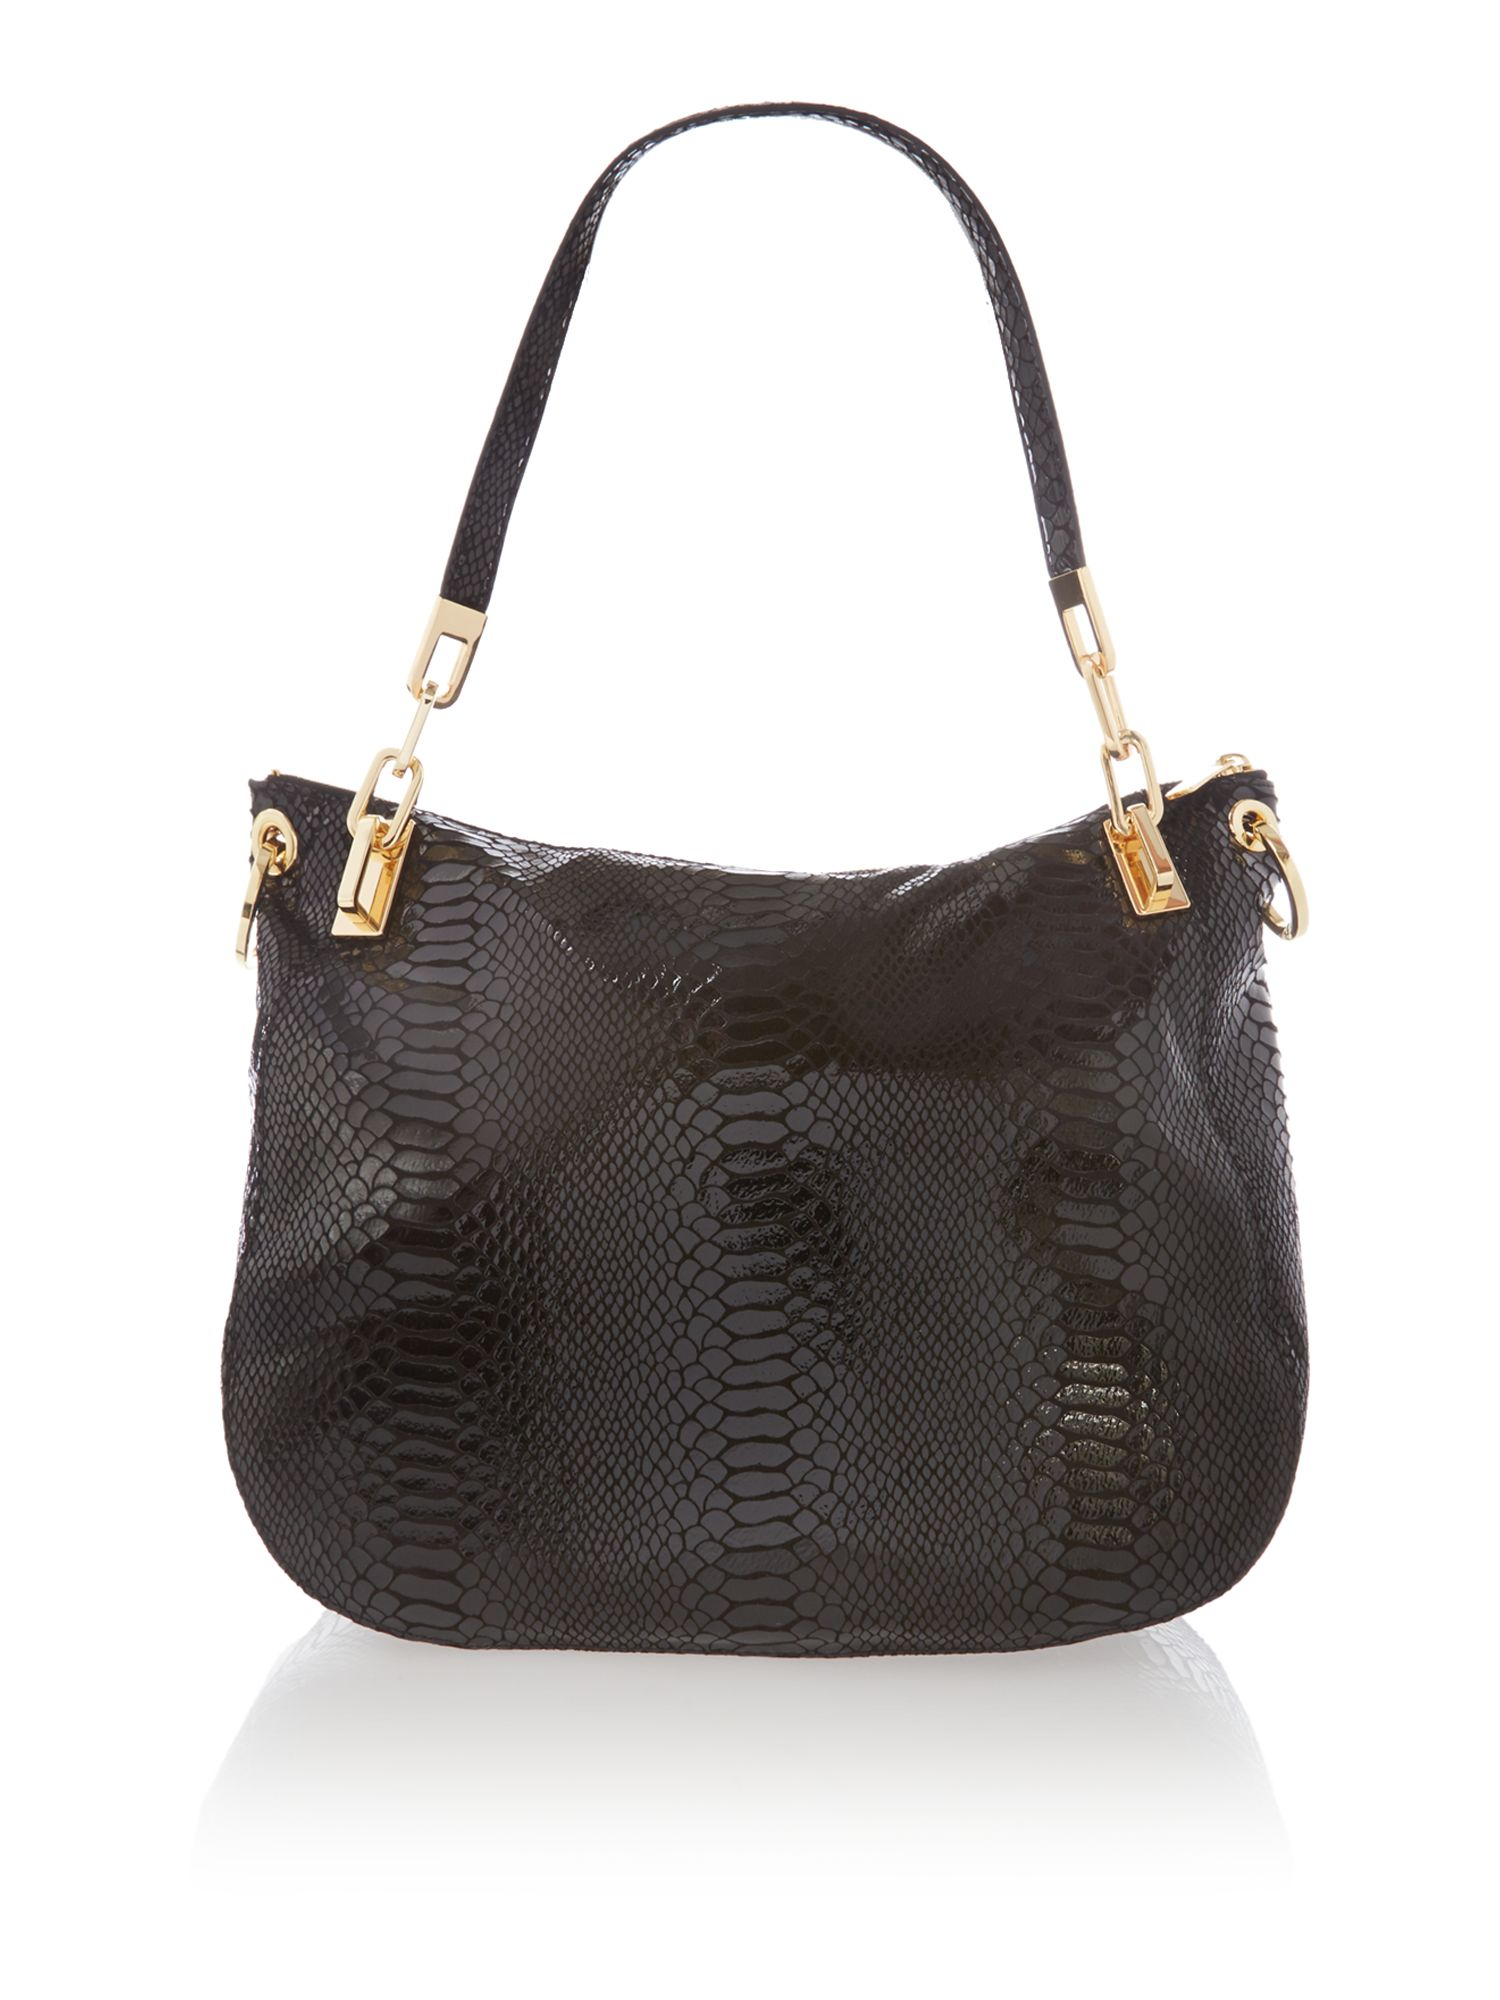 Brooke large black patent python tote bag